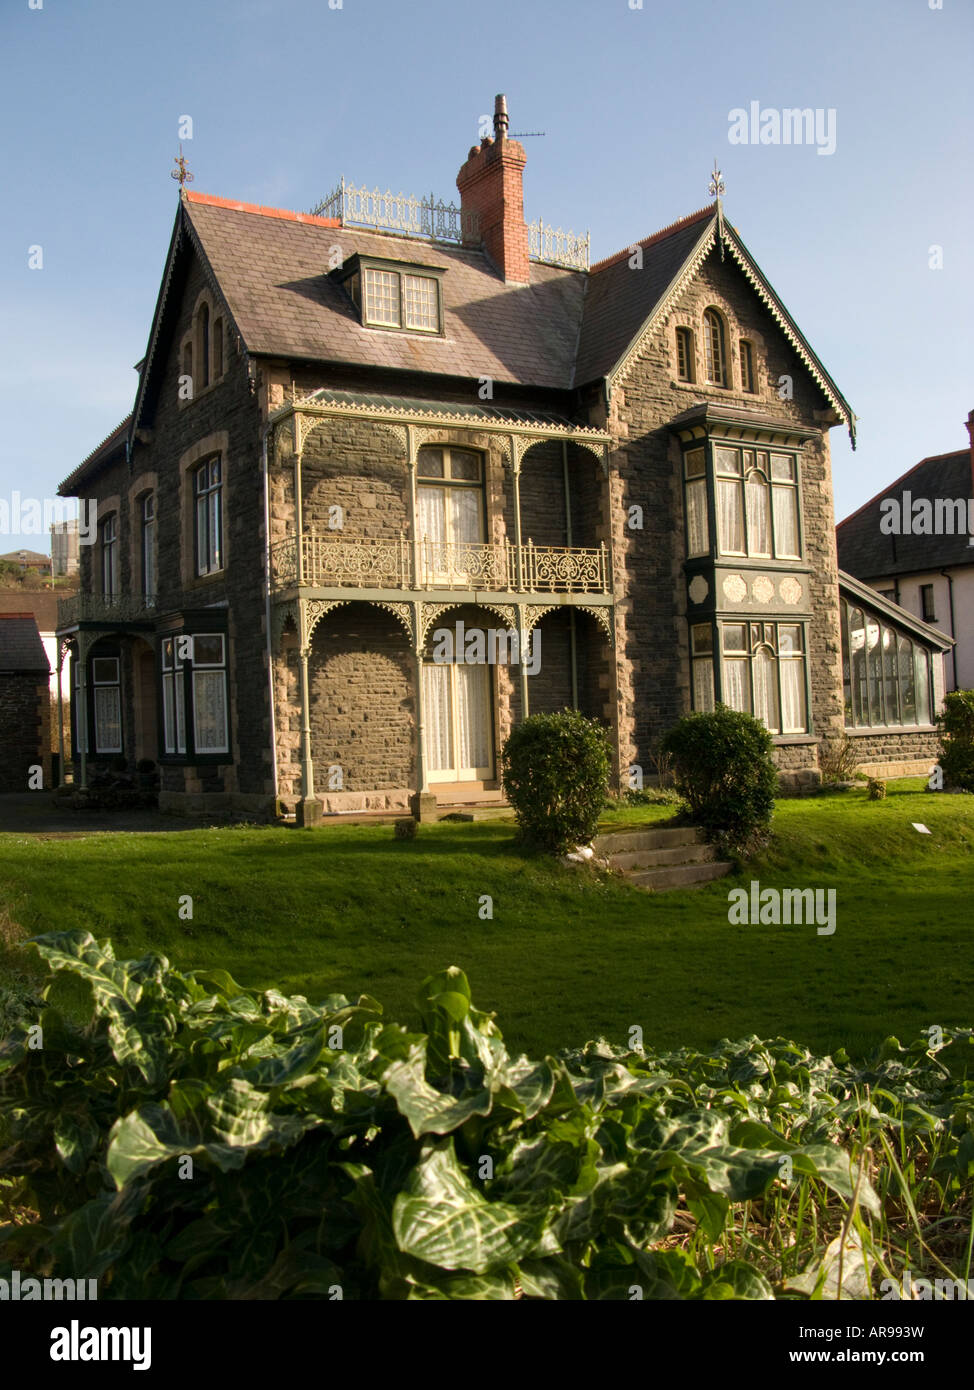 Victorian Gothic Villa Detached House Home Property With Wrought Iron Balcony Aberystwyth Wales Uk Stock